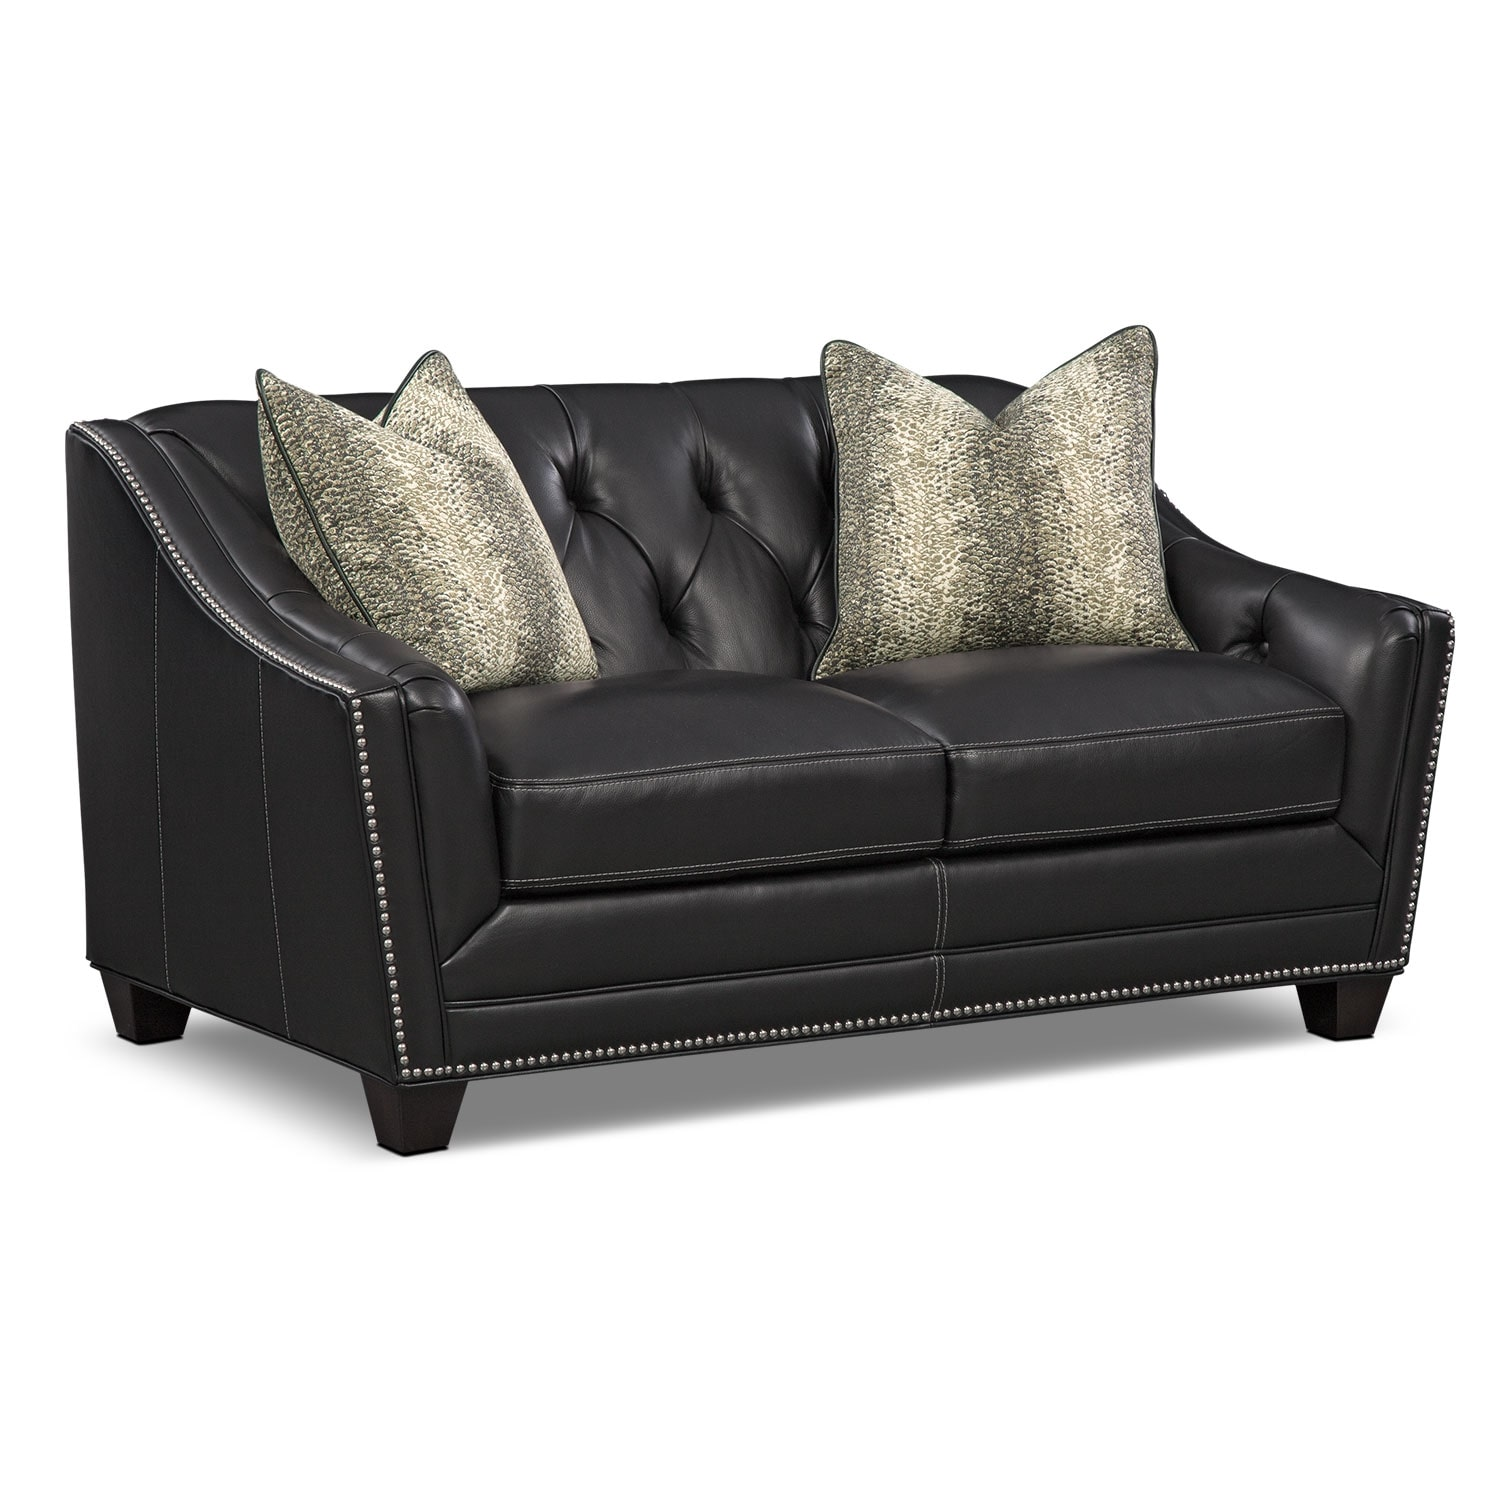 Living Room Furniture - Alexis Midnight Loveseat